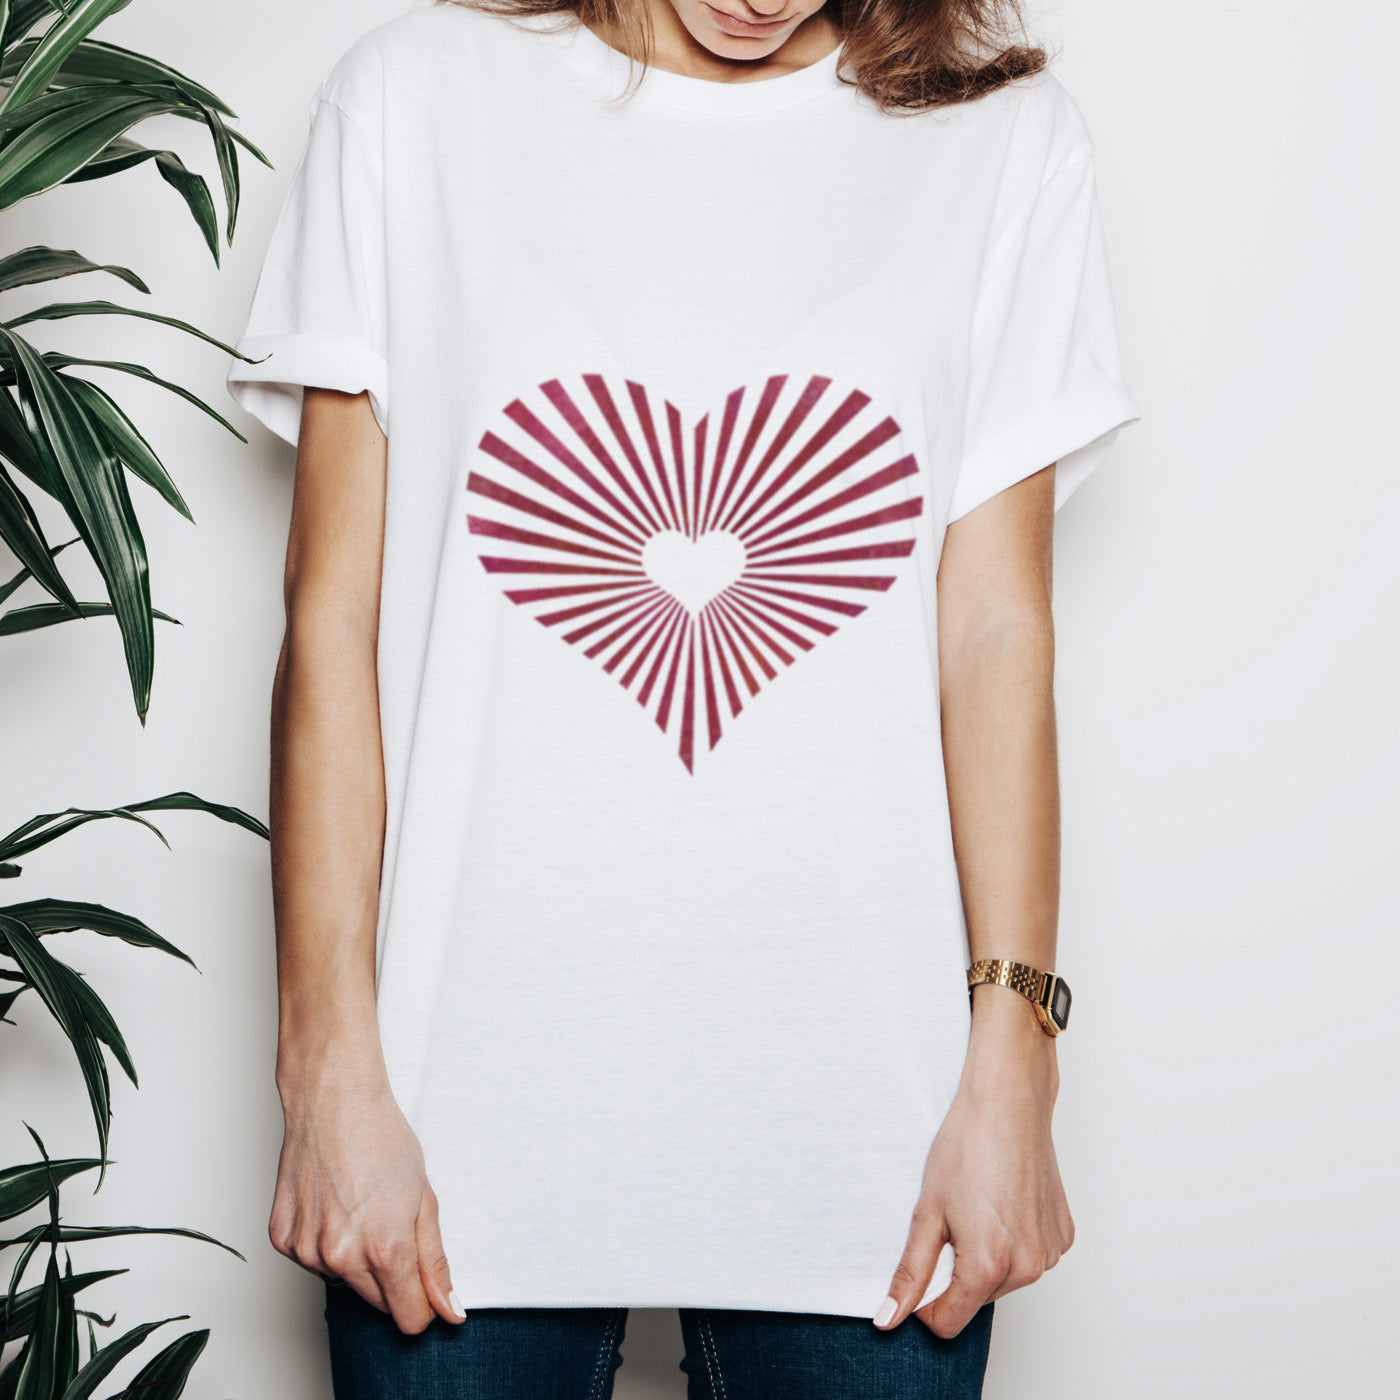 Sunburst Heart Stencilled onto White Tshirt - CraftStar Stencils